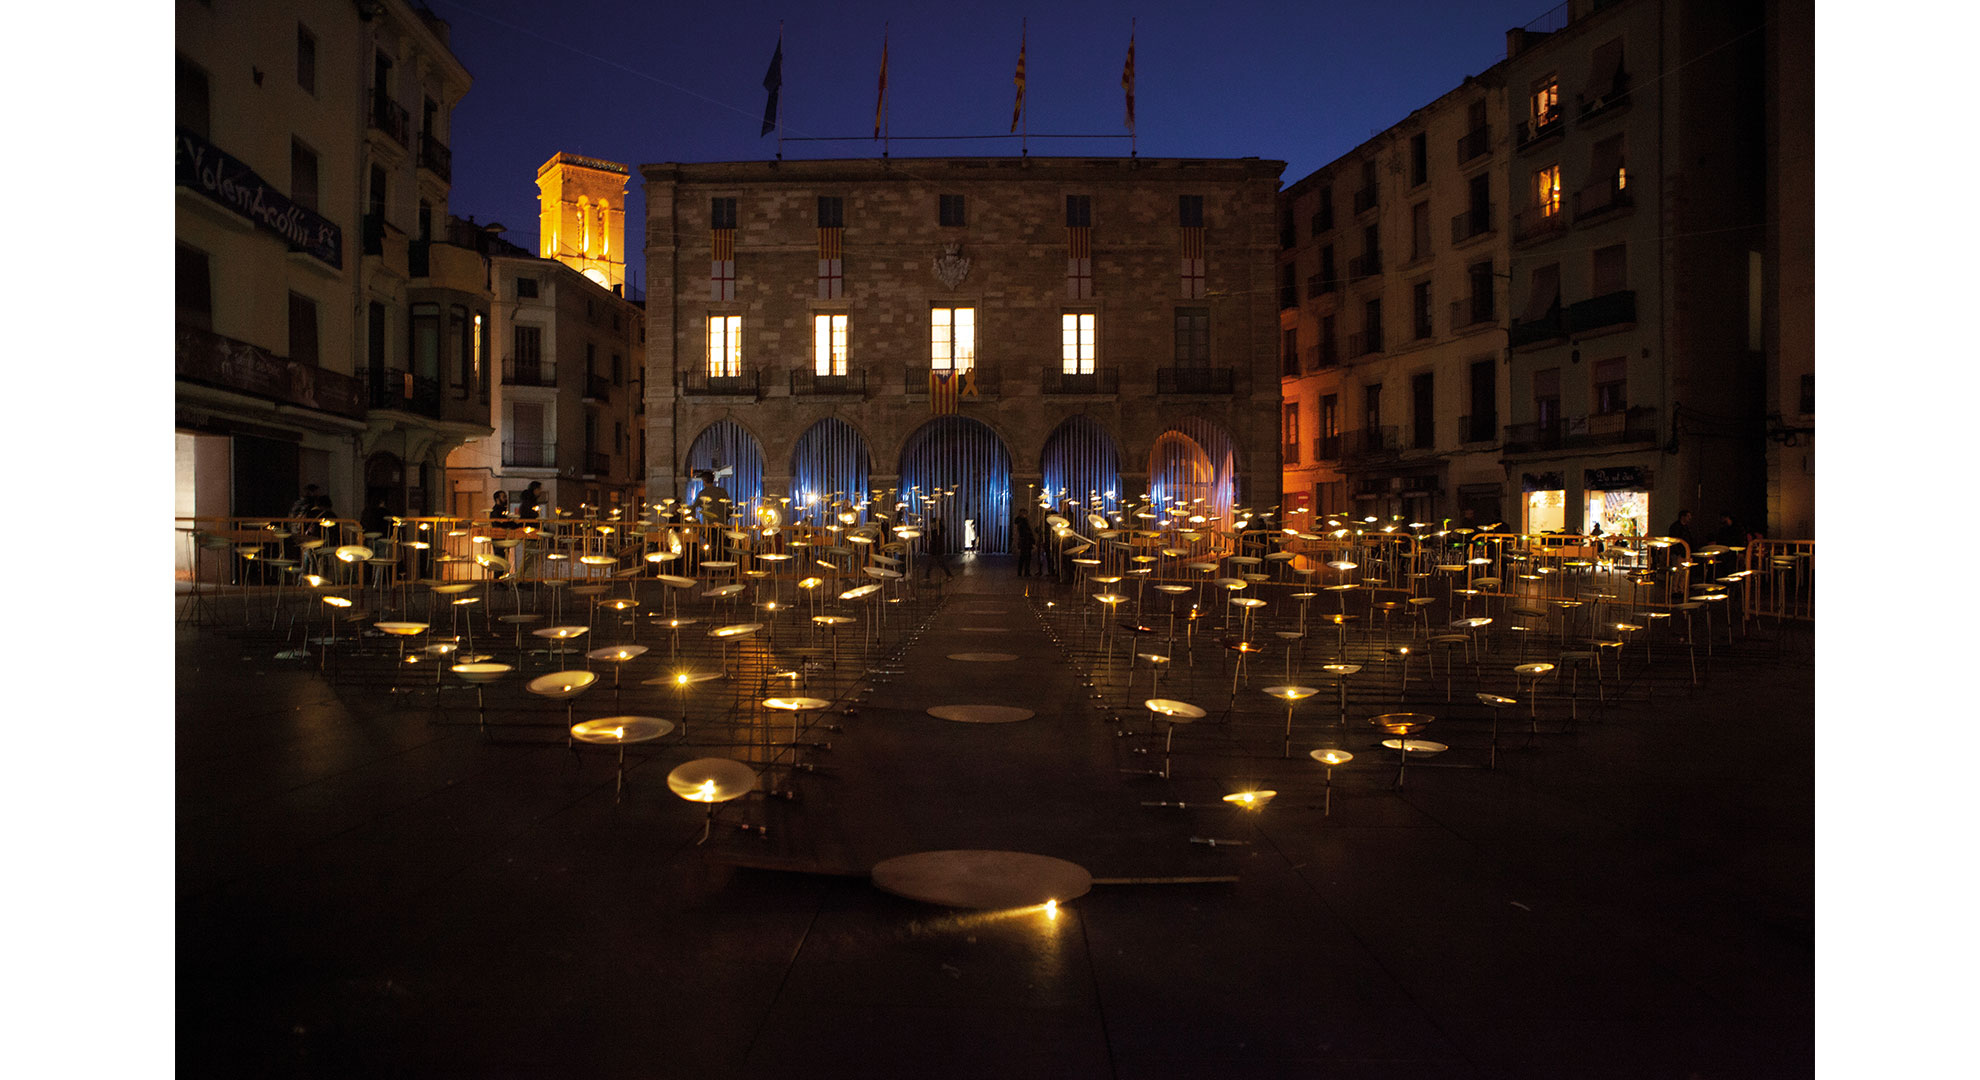 'Tribute to Fragility', an art and ephemeral architecture installation in Manresa (Barcelo-na).